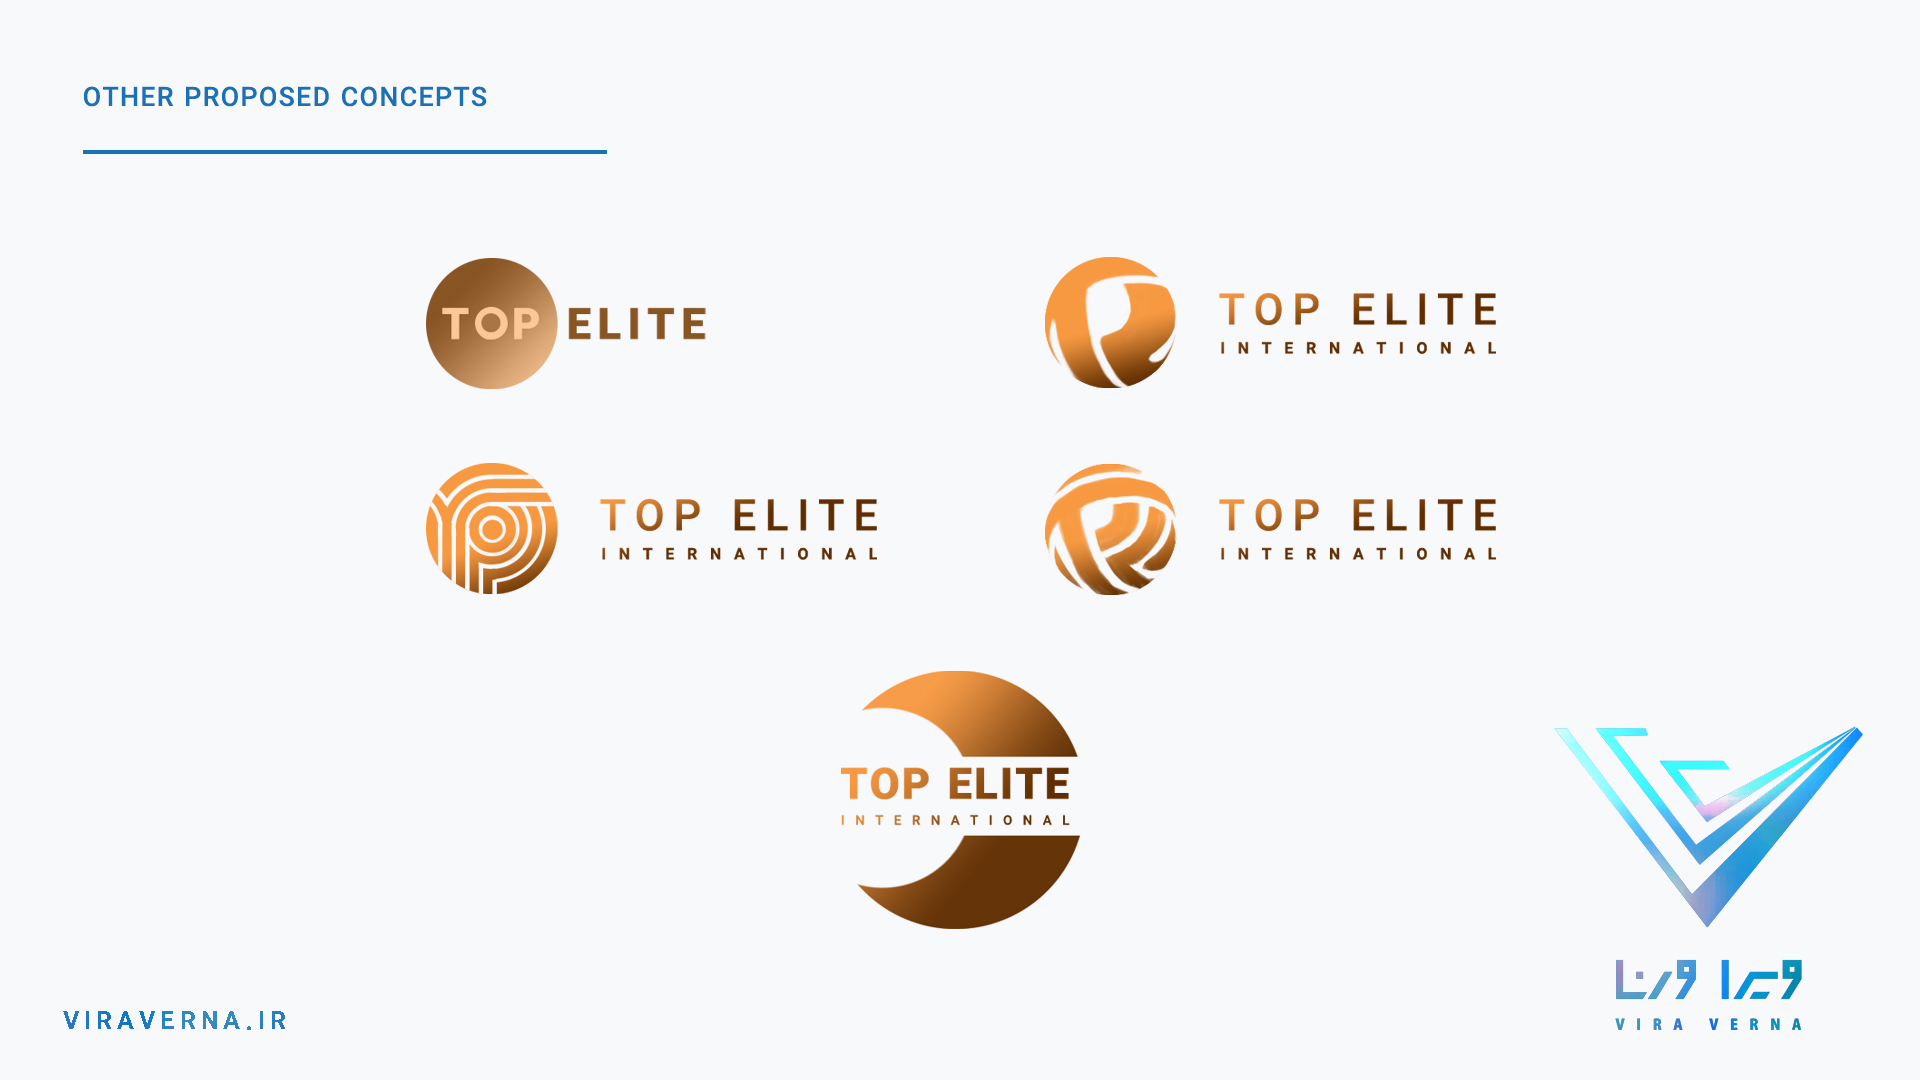 tope-elite-branding-shot-for-the-site-02